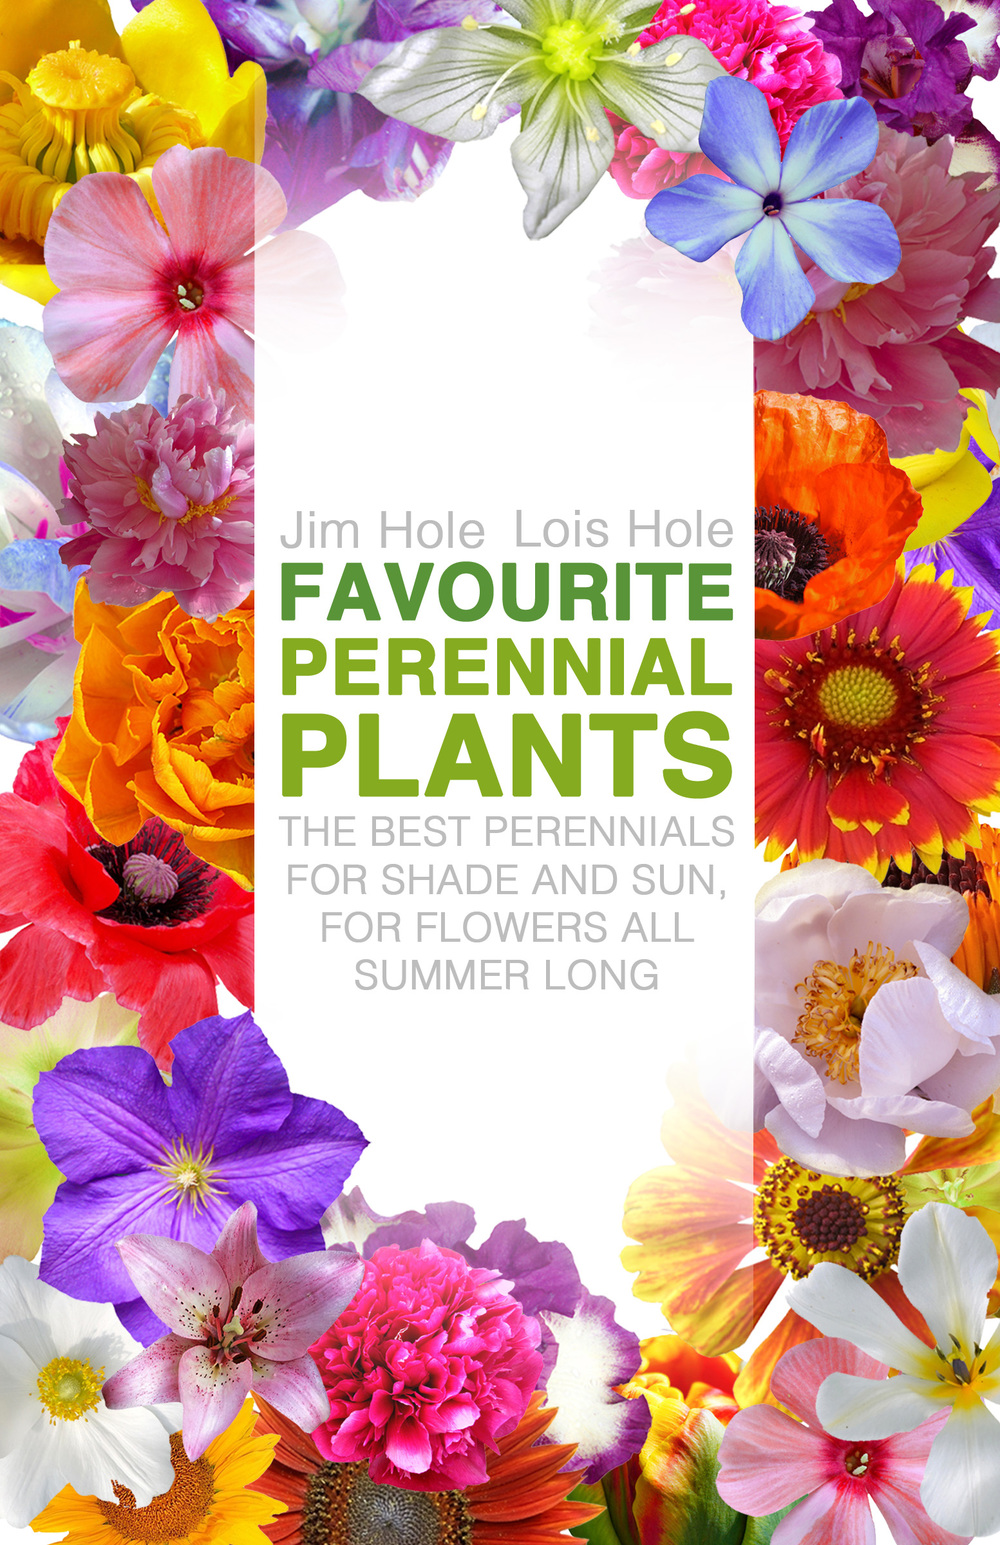 Favourite Perennial Plants The Best Perennials For Sun And Shade